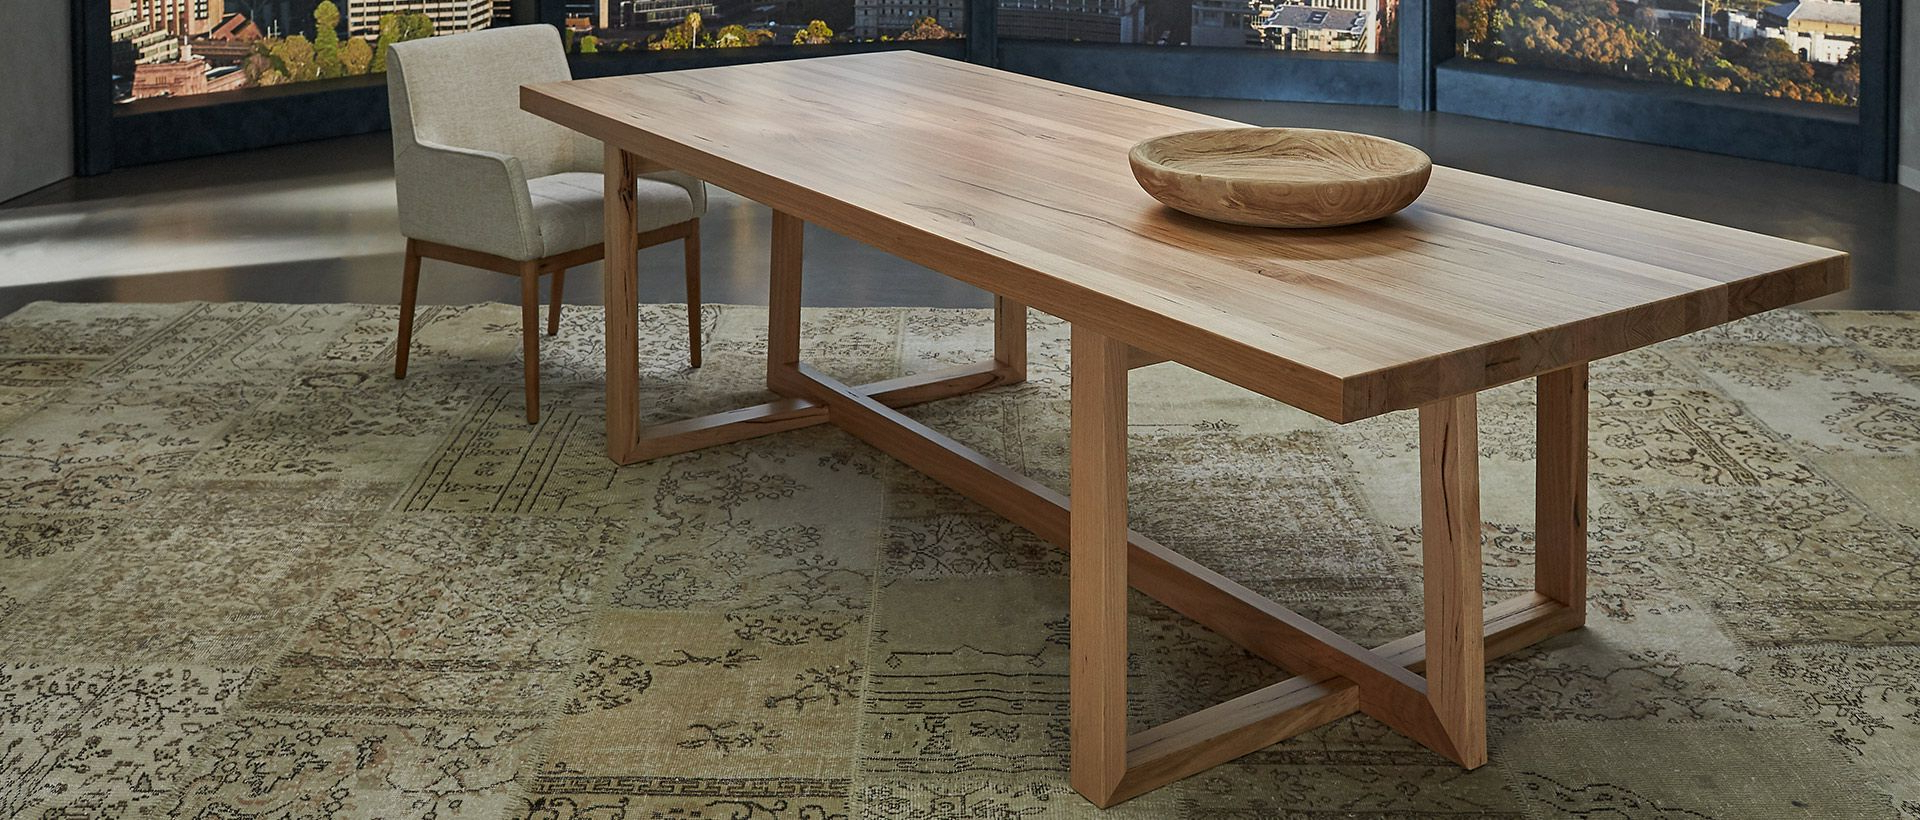 Nick Scali inside 4 Seater Round Wooden Dining Tables With Chrome Legs